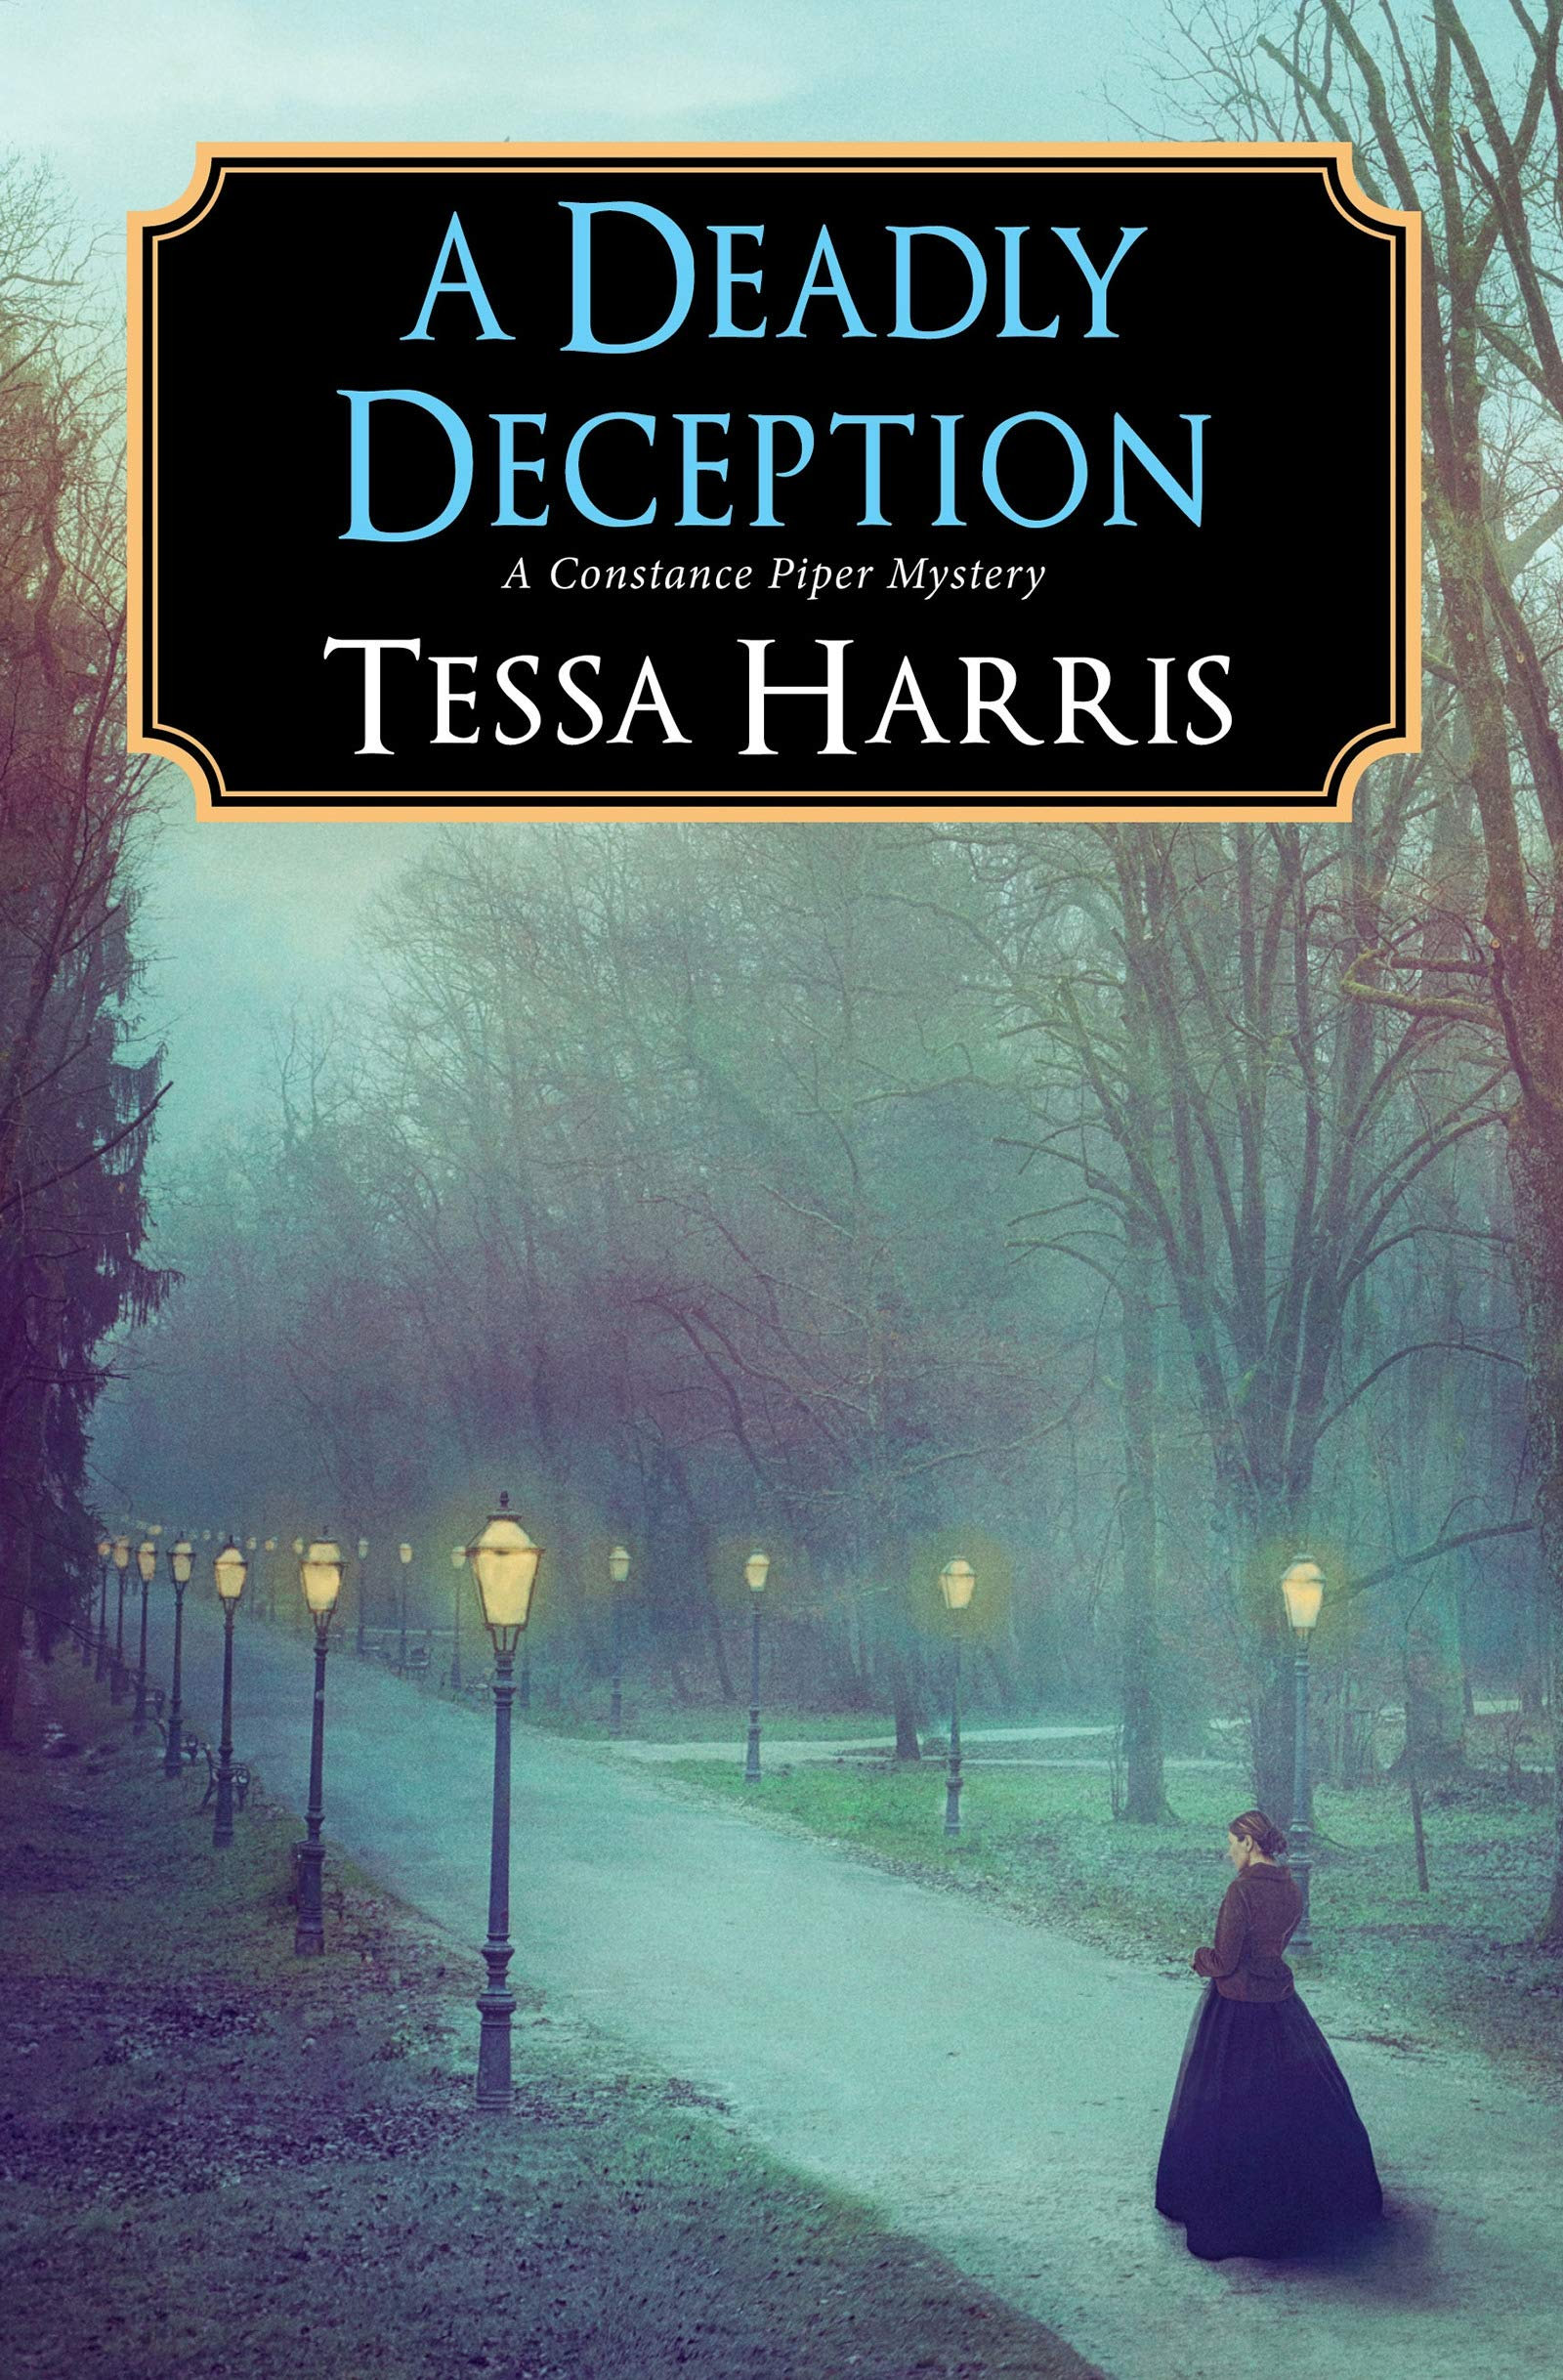 plottwistbookreviews.com  A Deadly Deception by Tessa Harris